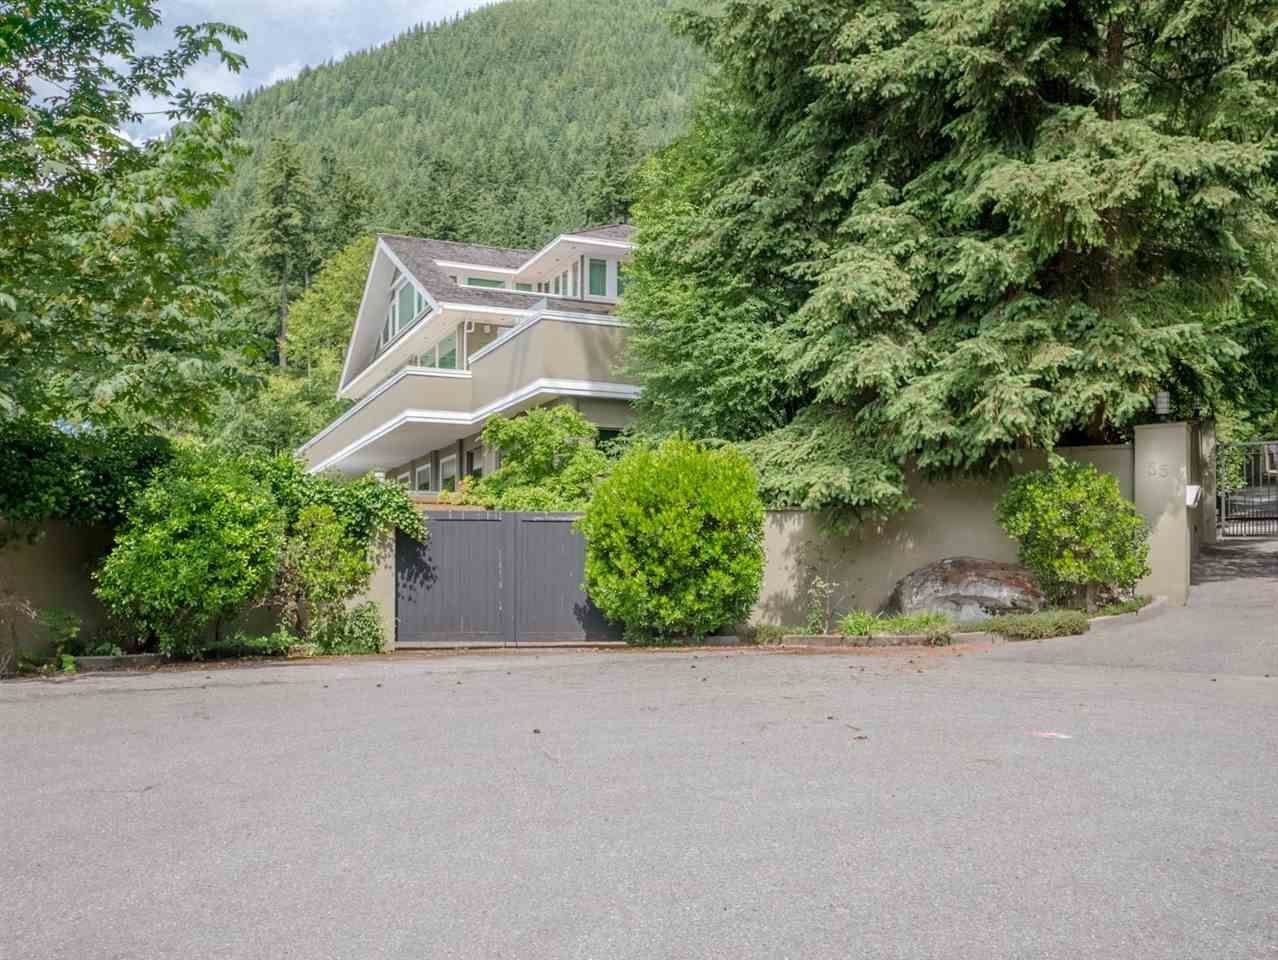 Main Photo: 55 CREEKVIEW PLACE: Lions Bay House for sale (West Vancouver)  : MLS®# R2084524